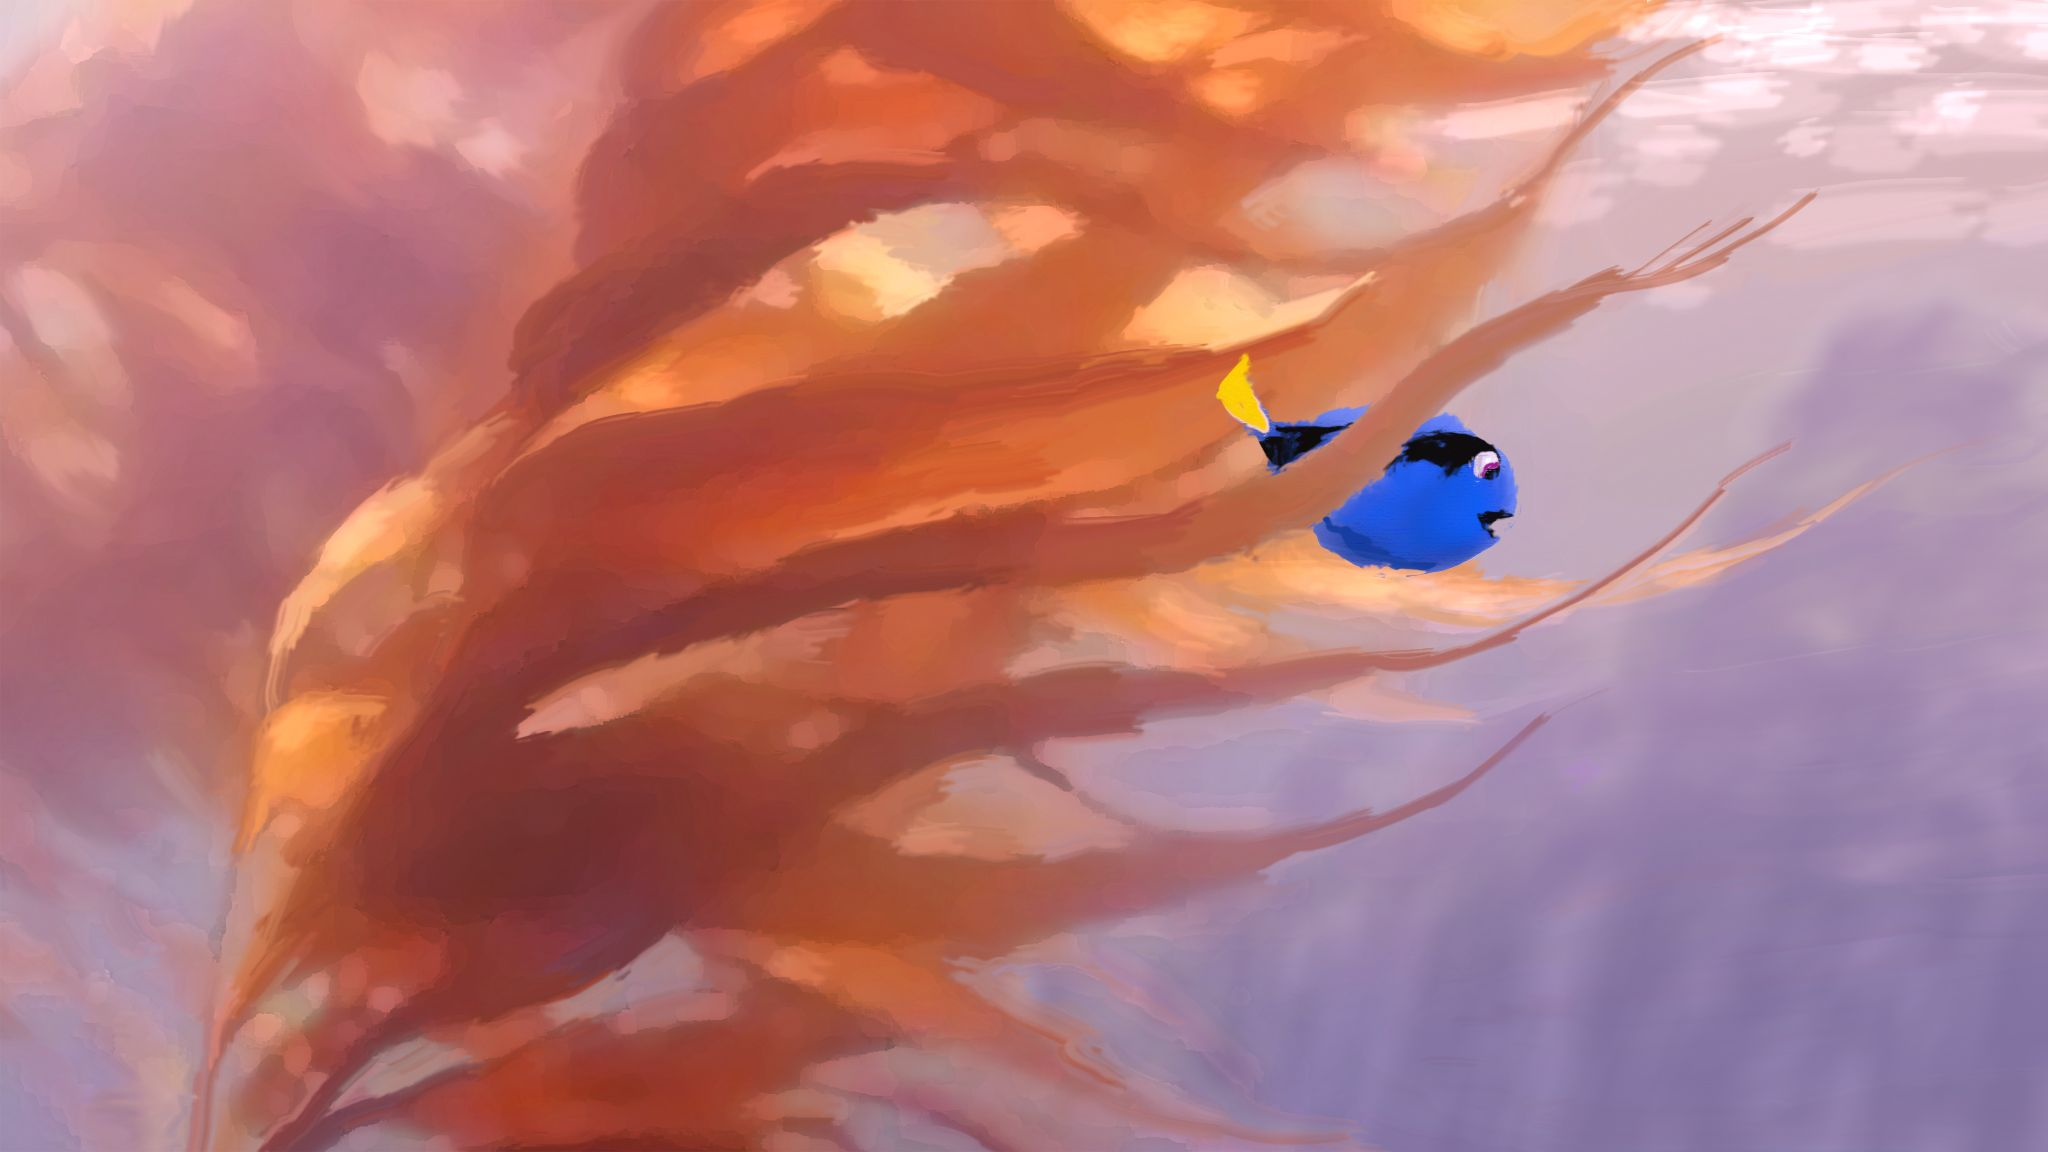 finding dory images go behind the scenes plus concept art